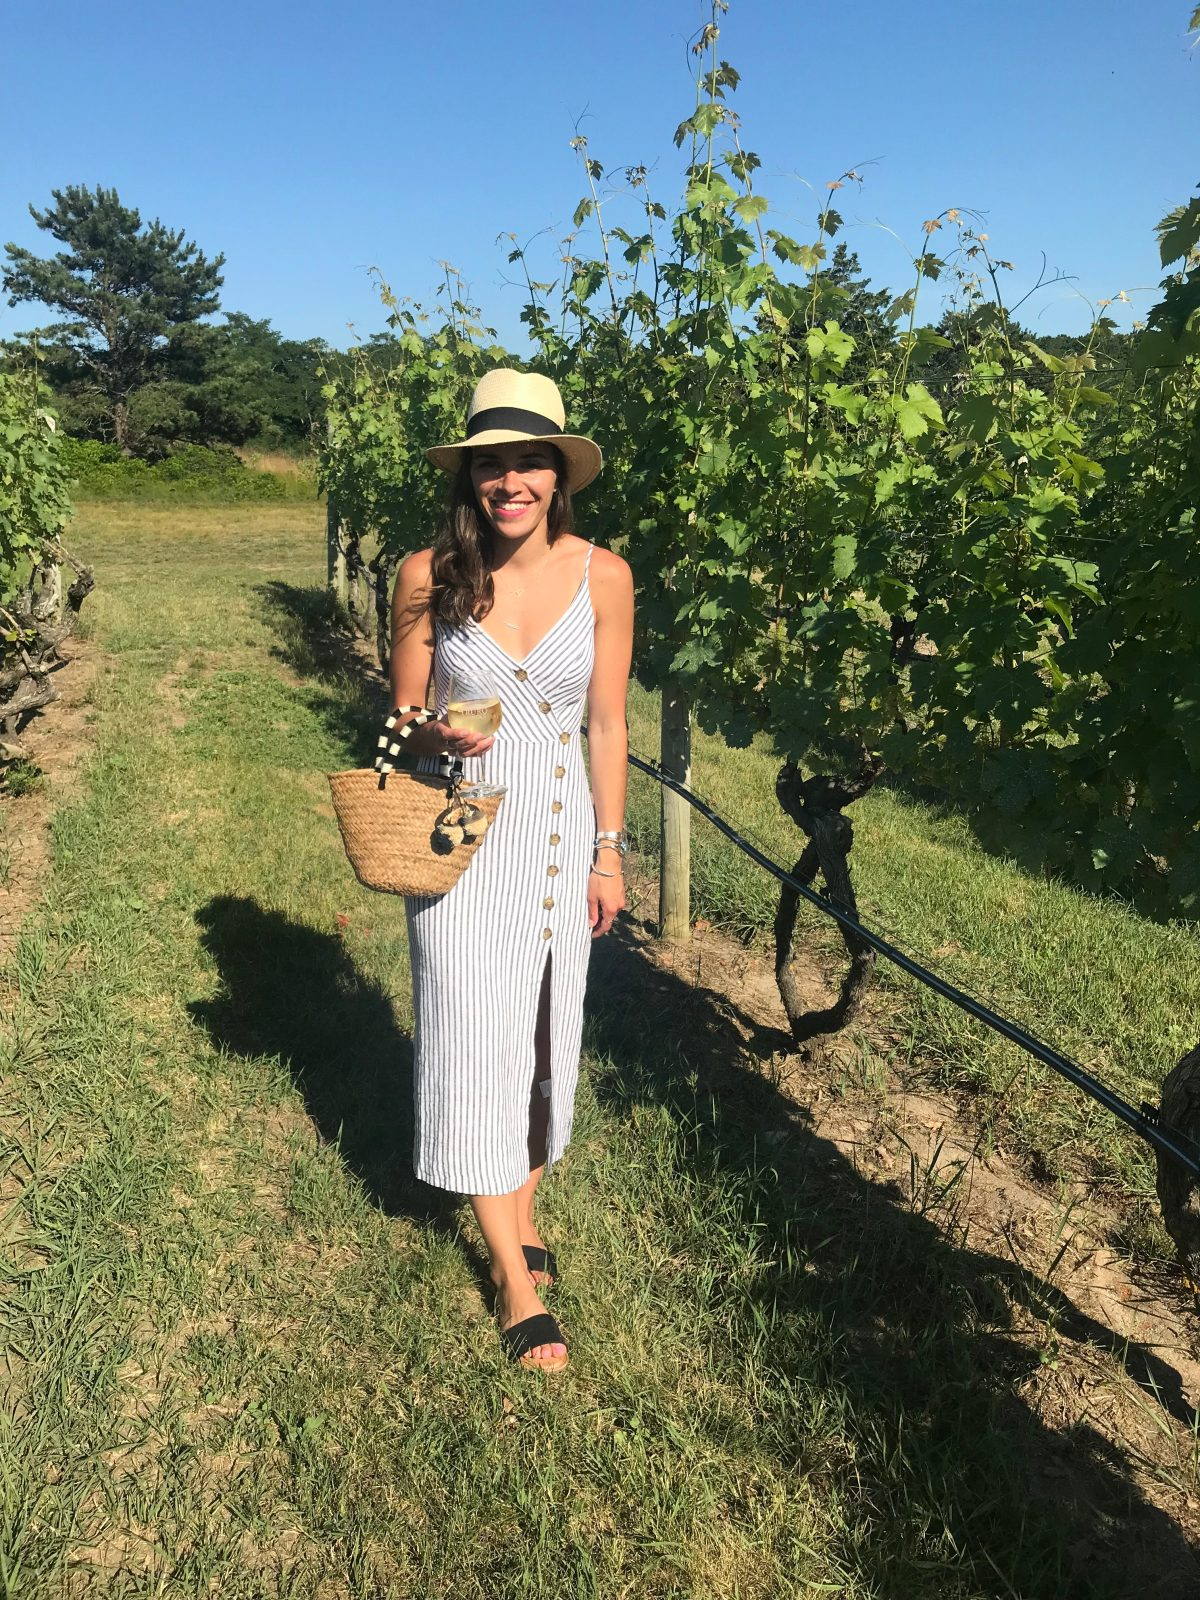 5cd00c9ea 10 Things I'm Buying This Summer. July 5, 2018. winery, striped dress,  dress, hat